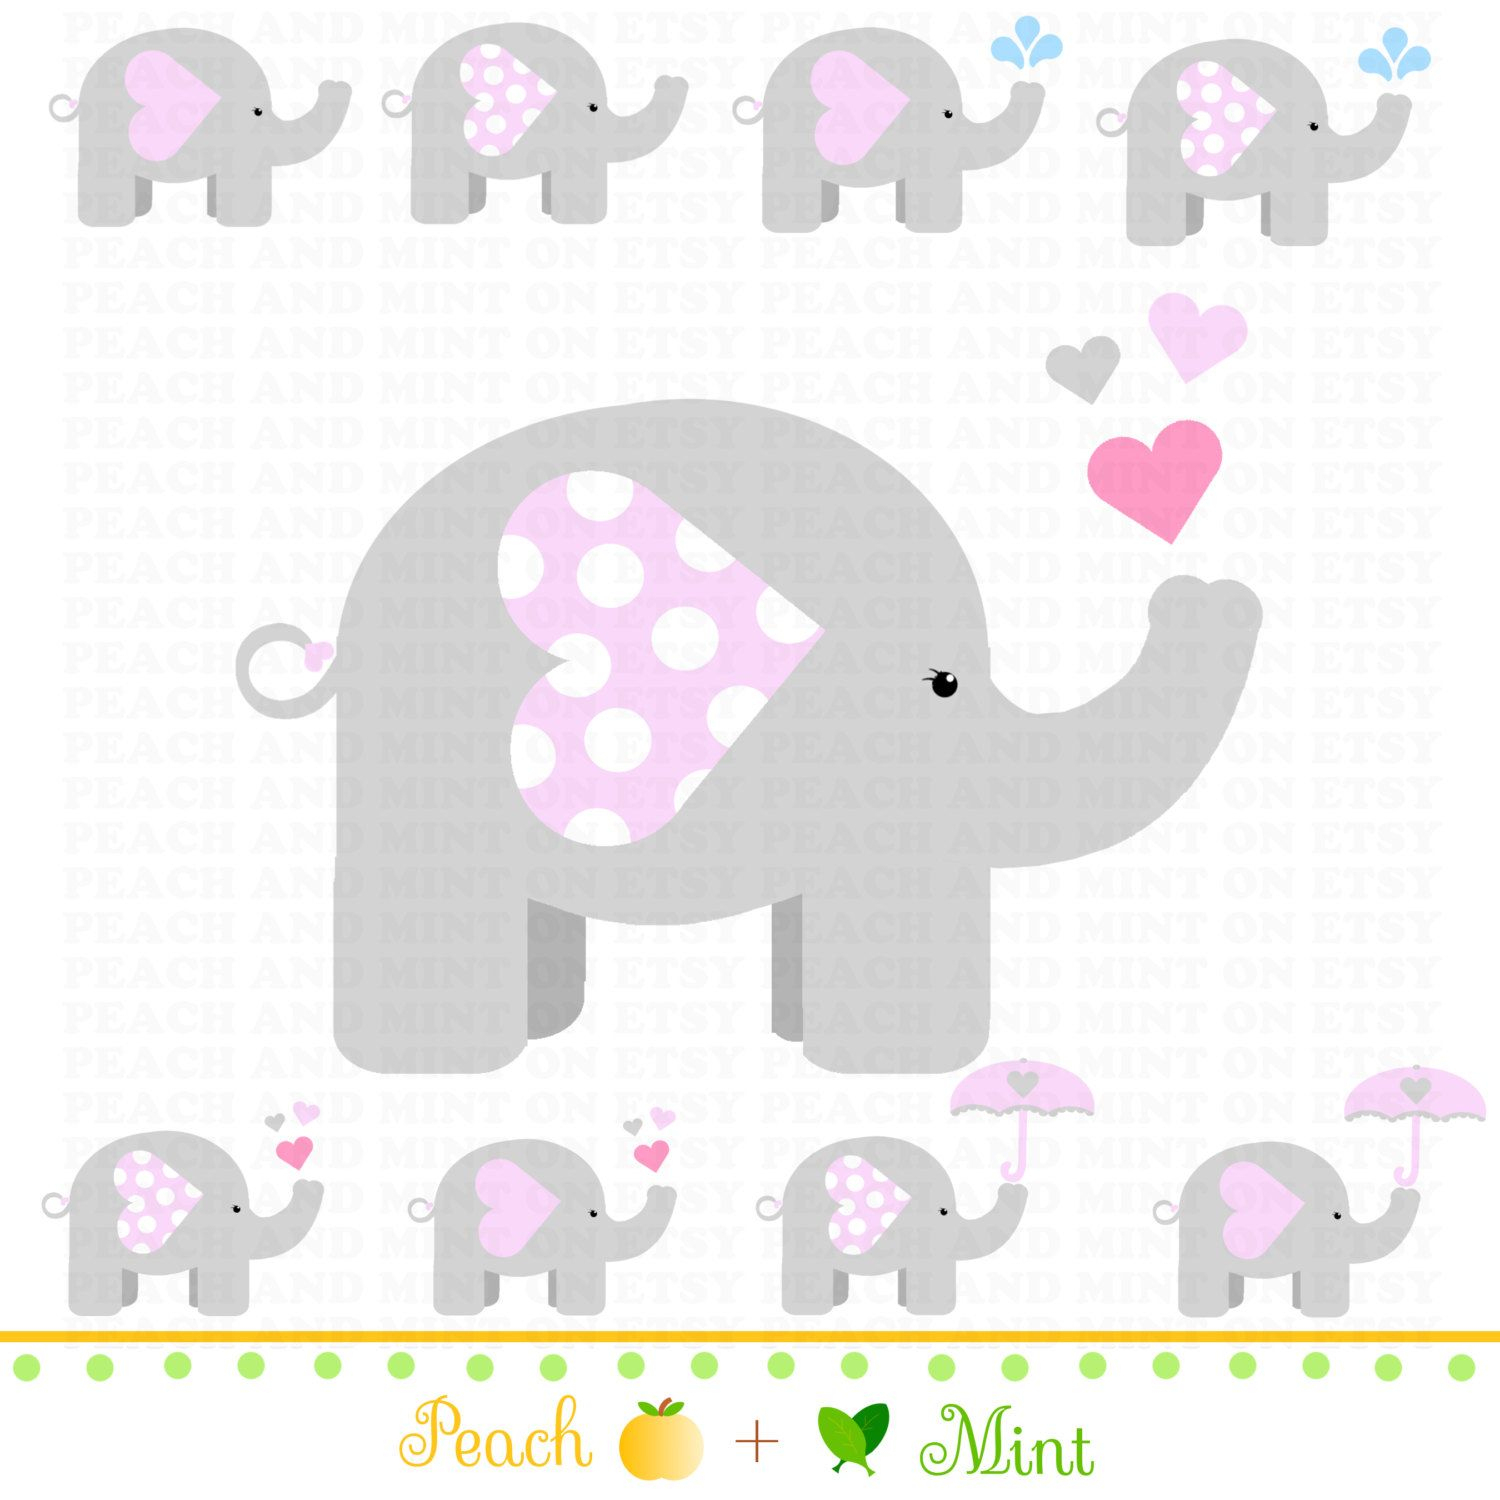 Free Printable Elephants For Corsage In Baby Shower - Google Search - Free Printable Elephant Baby Shower